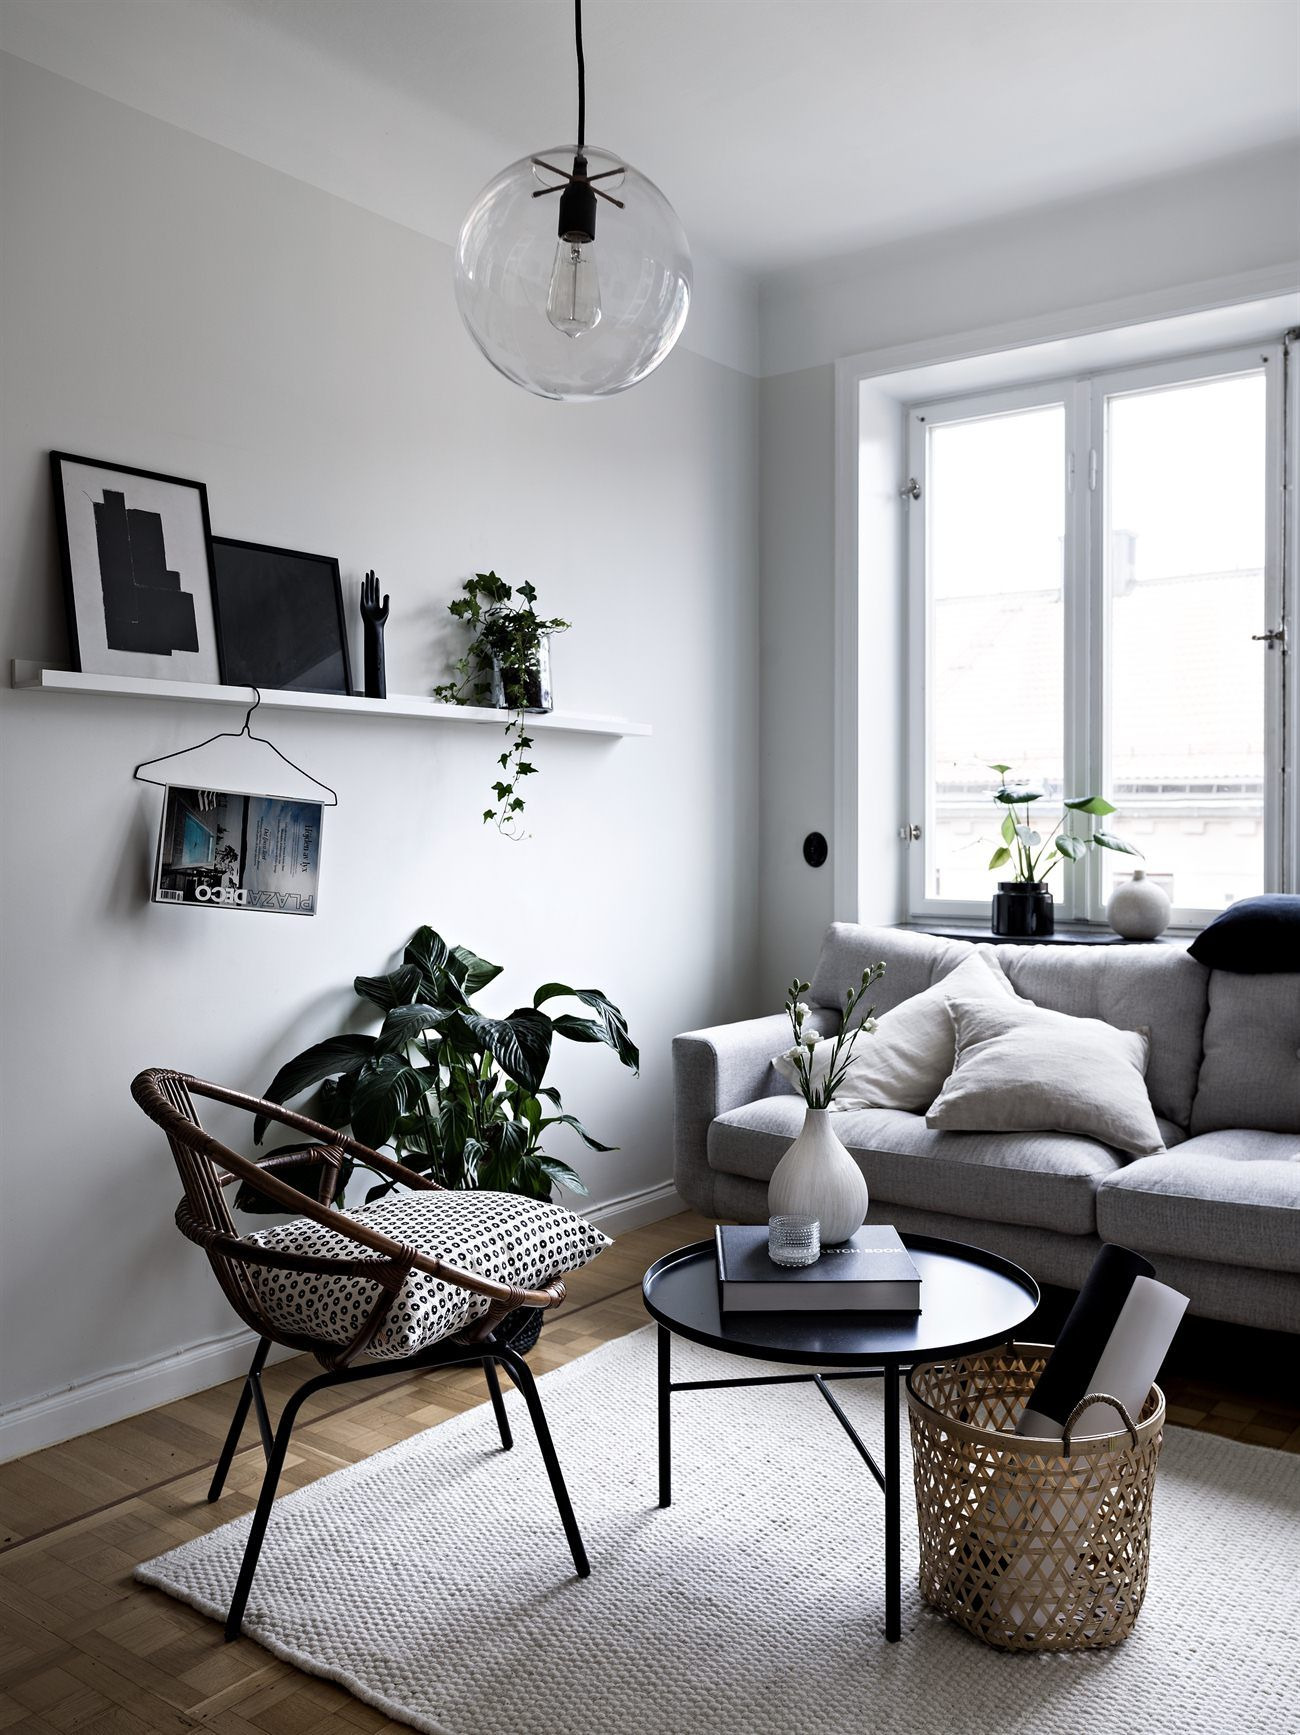 marvellous minimalist small living room design ideas wall decorating sitting modern apartment inspiration to make